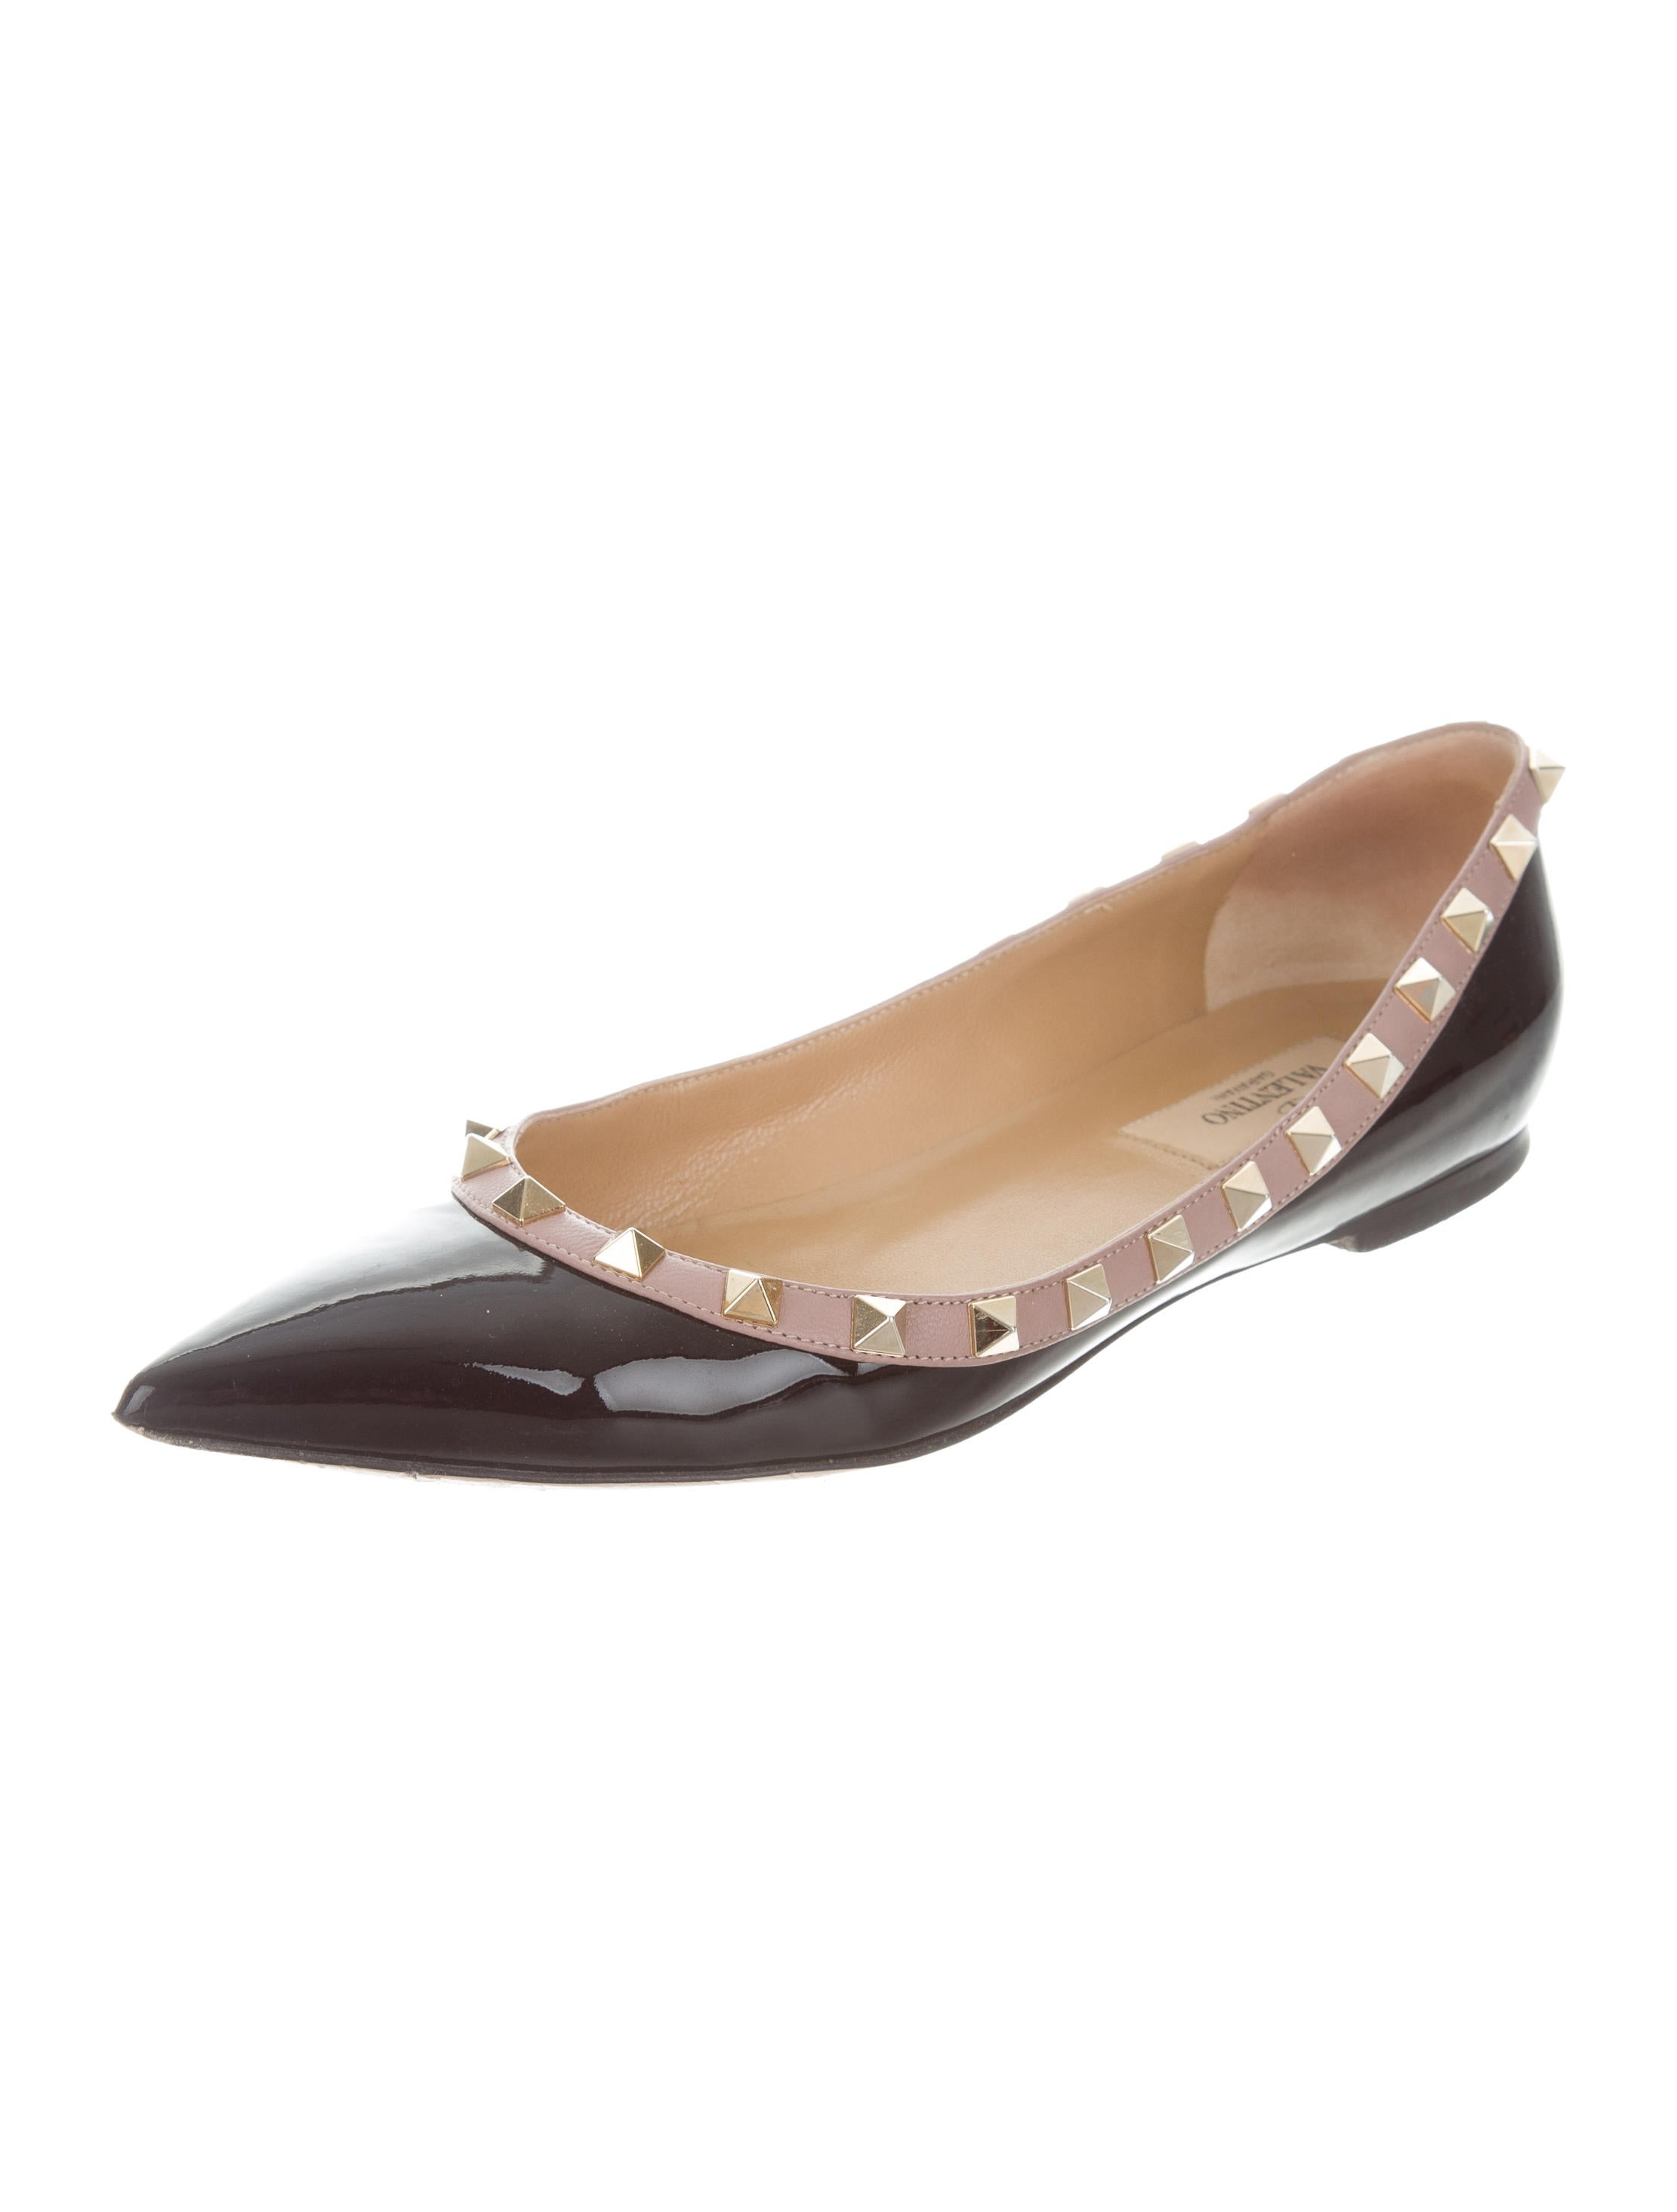 valentino rockstud patent leather flats shoes val71298